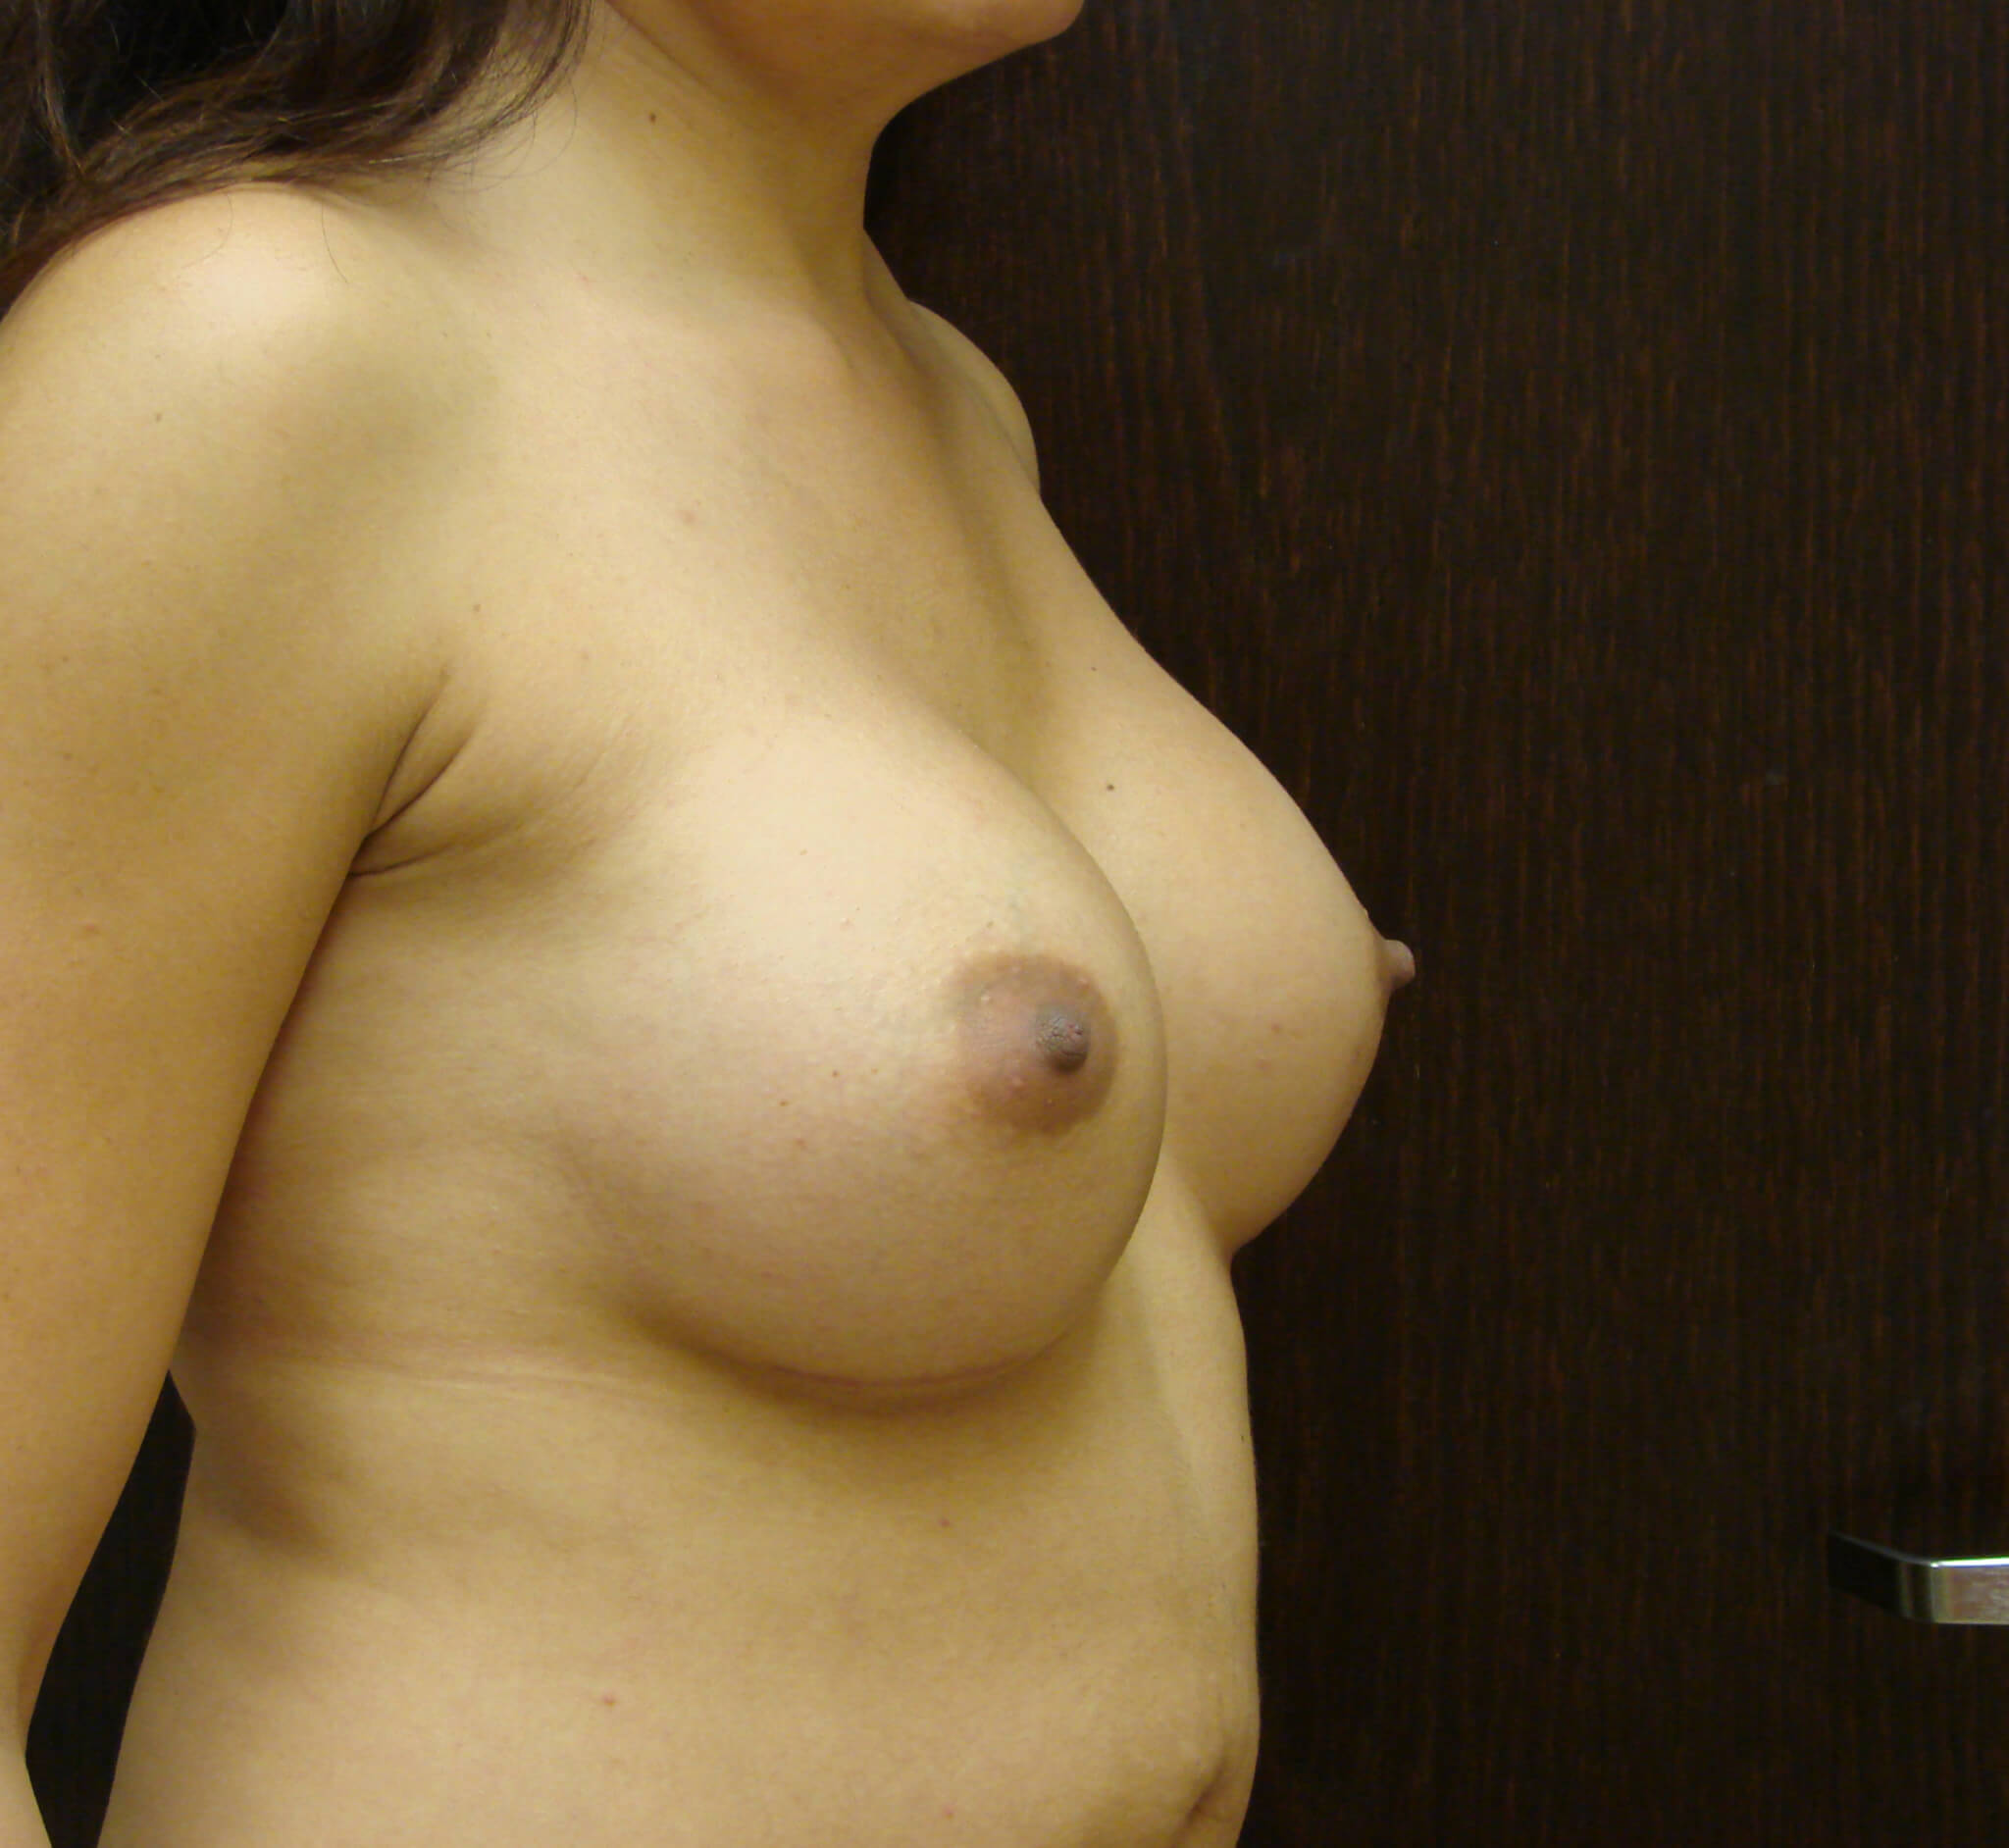 Breast Augmentation Patient had 325CC saline implants replaced with 570CC silicone implants